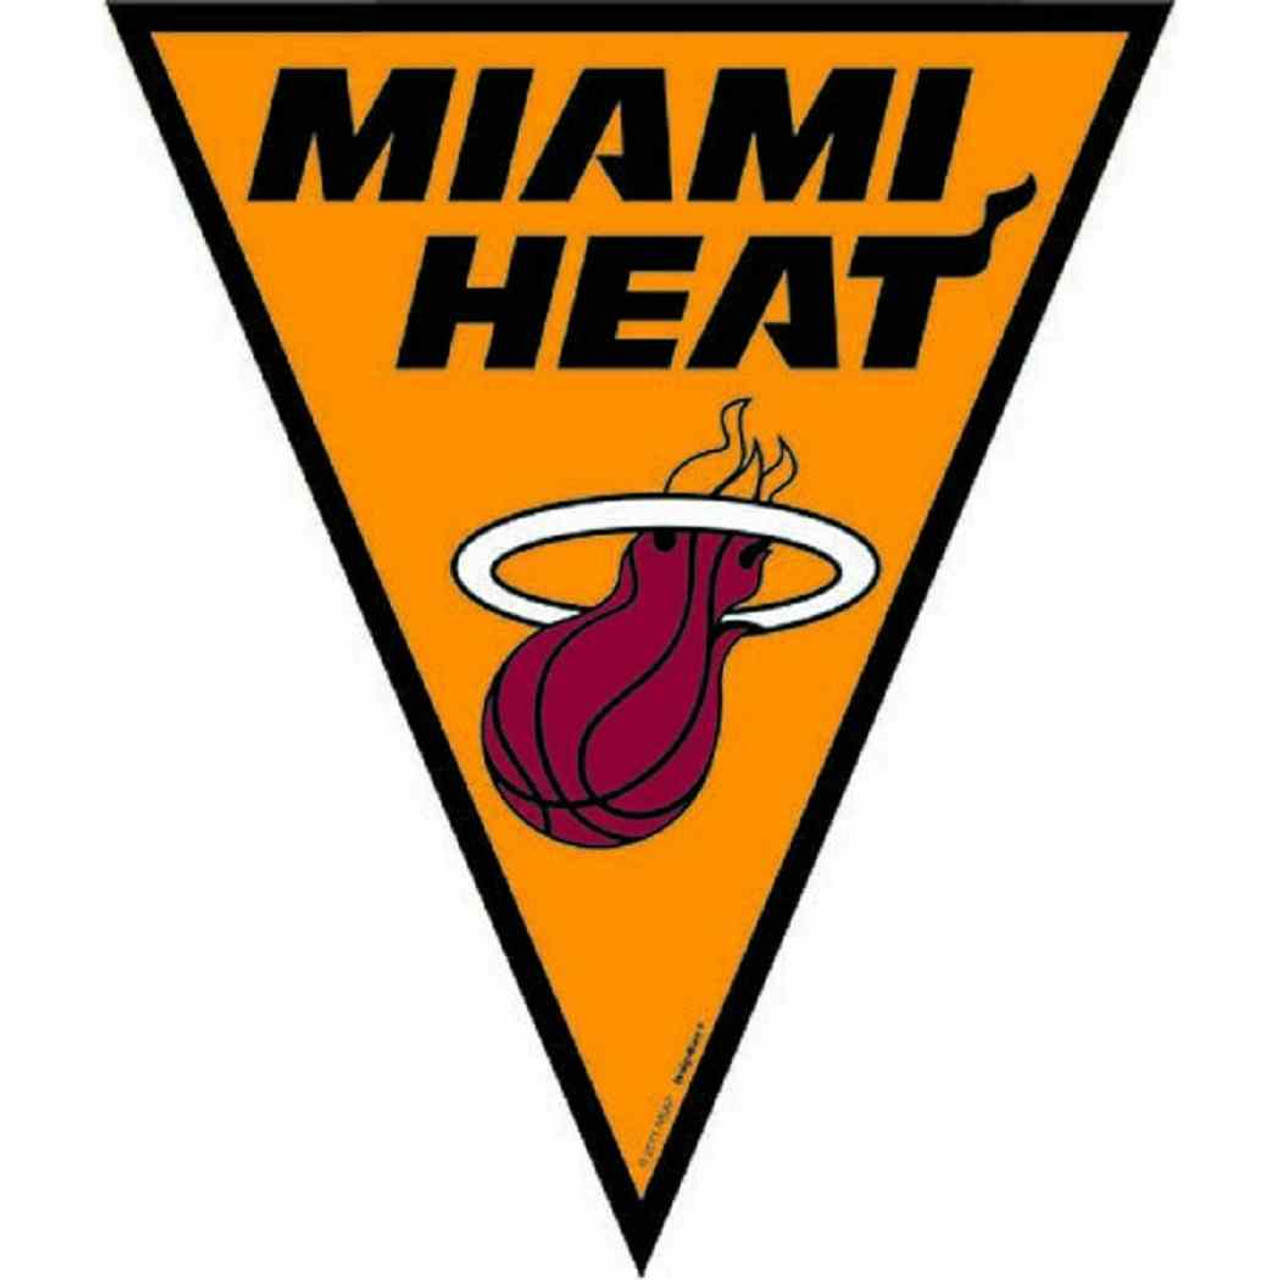 Miami Heat Nba Basketball Sports Party Decoration Pennant Flag Banner Parties Plus